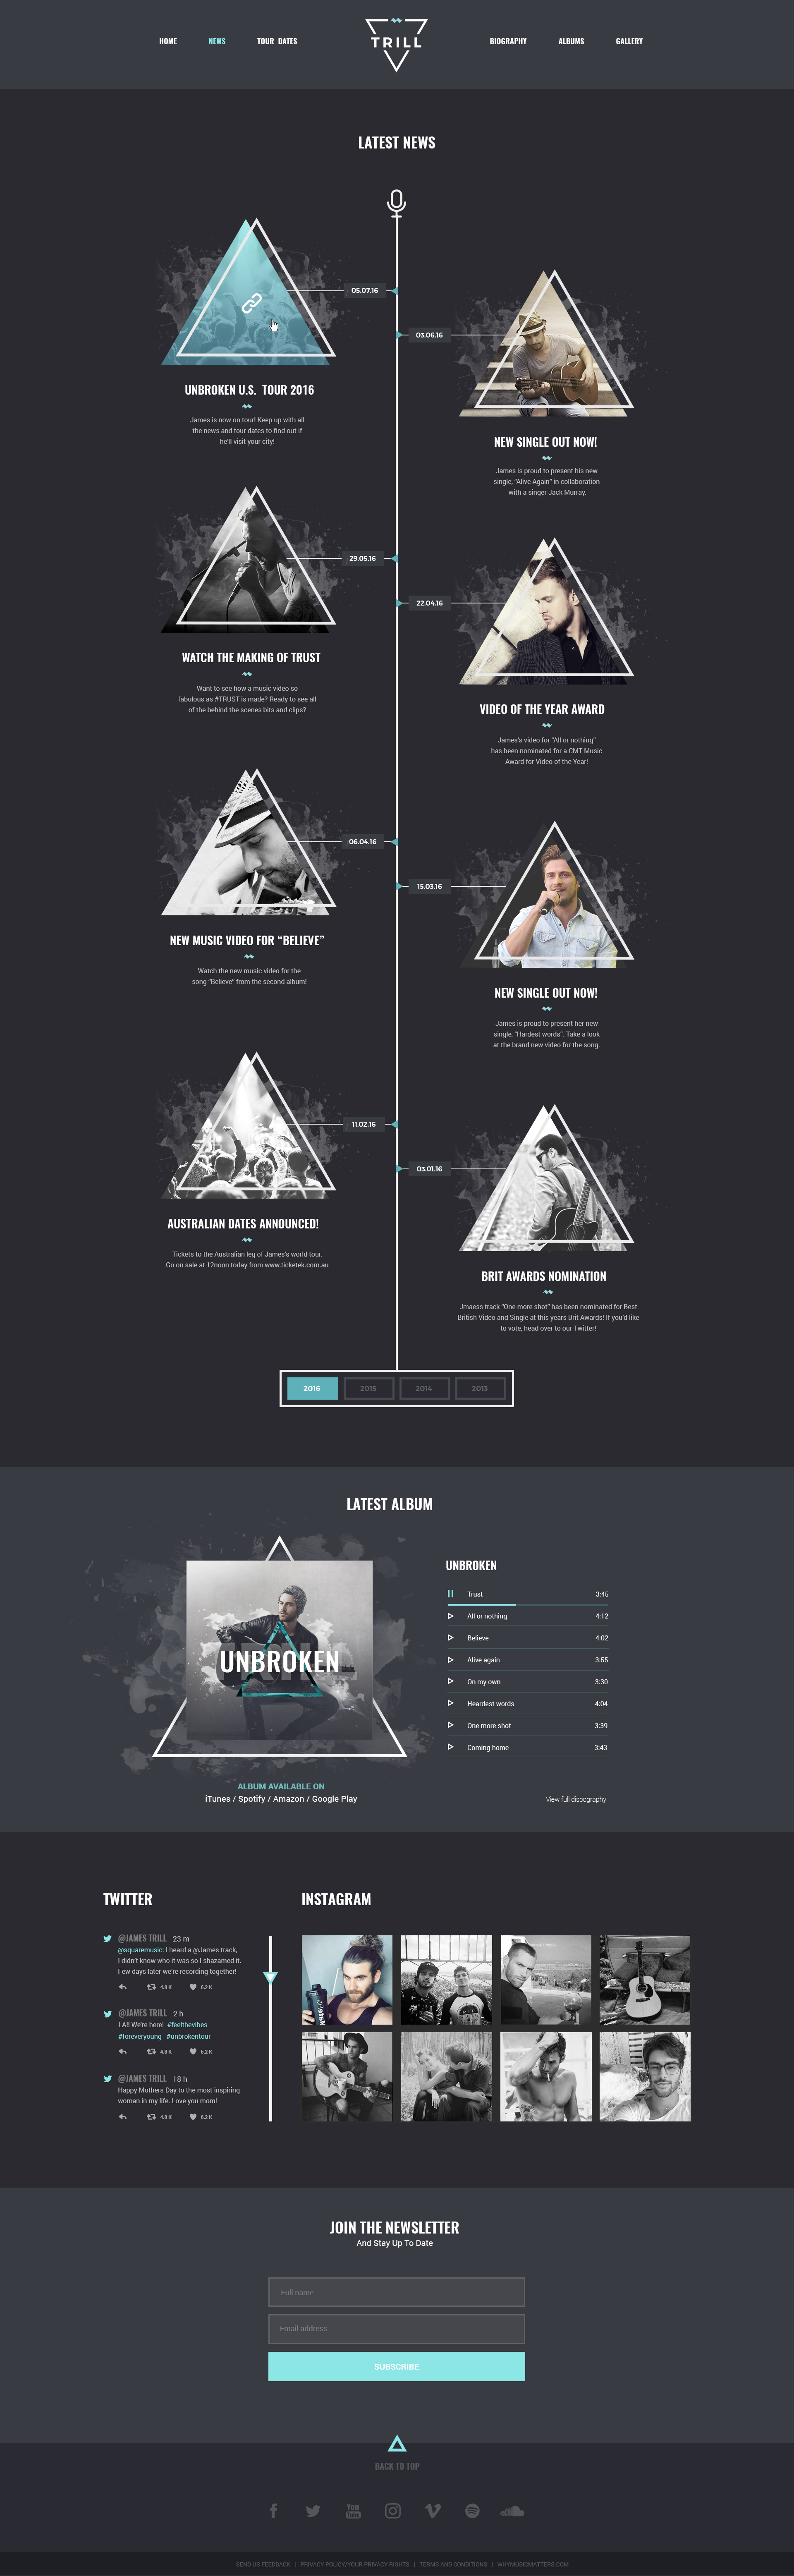 Cool News Video Template Images - Entry Level Resume Templates ...